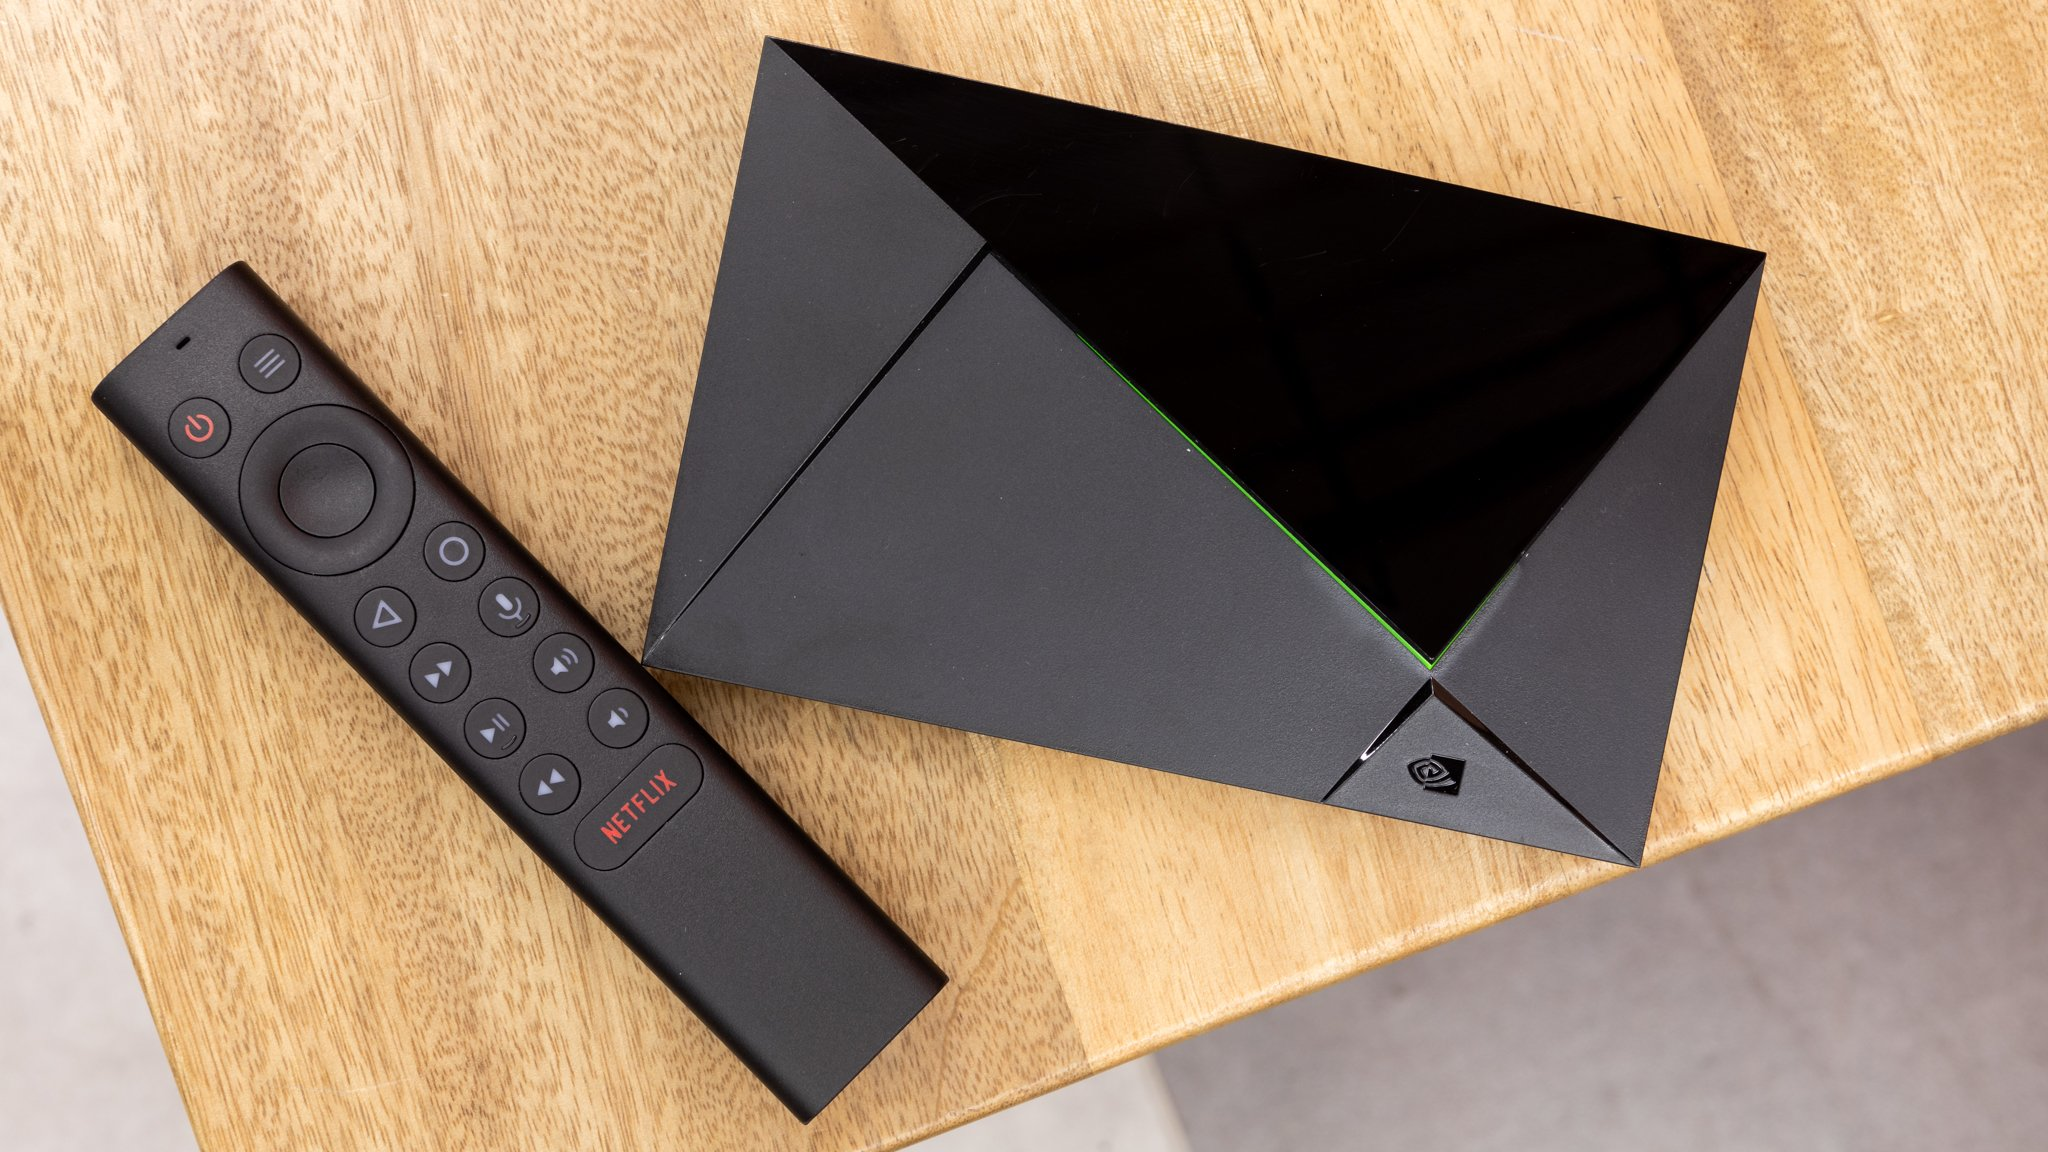 Nvidia Shield TV Pro (2019) review: The most powerful media streamer